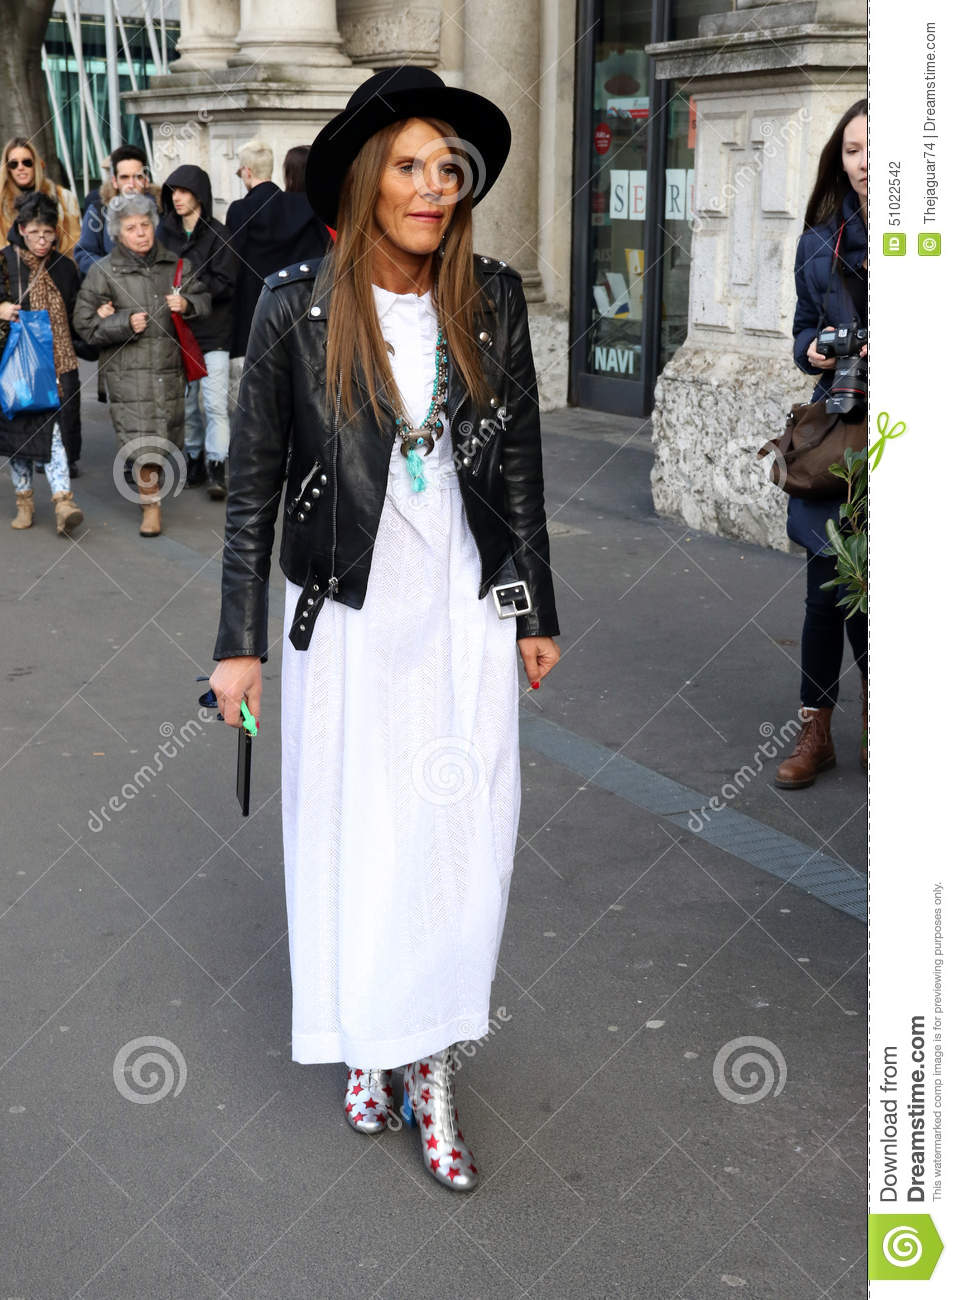 Anna Dello Russo Milano Milan Fashion Week Streetstyle Autumn Winter 2015 2016 Editorial